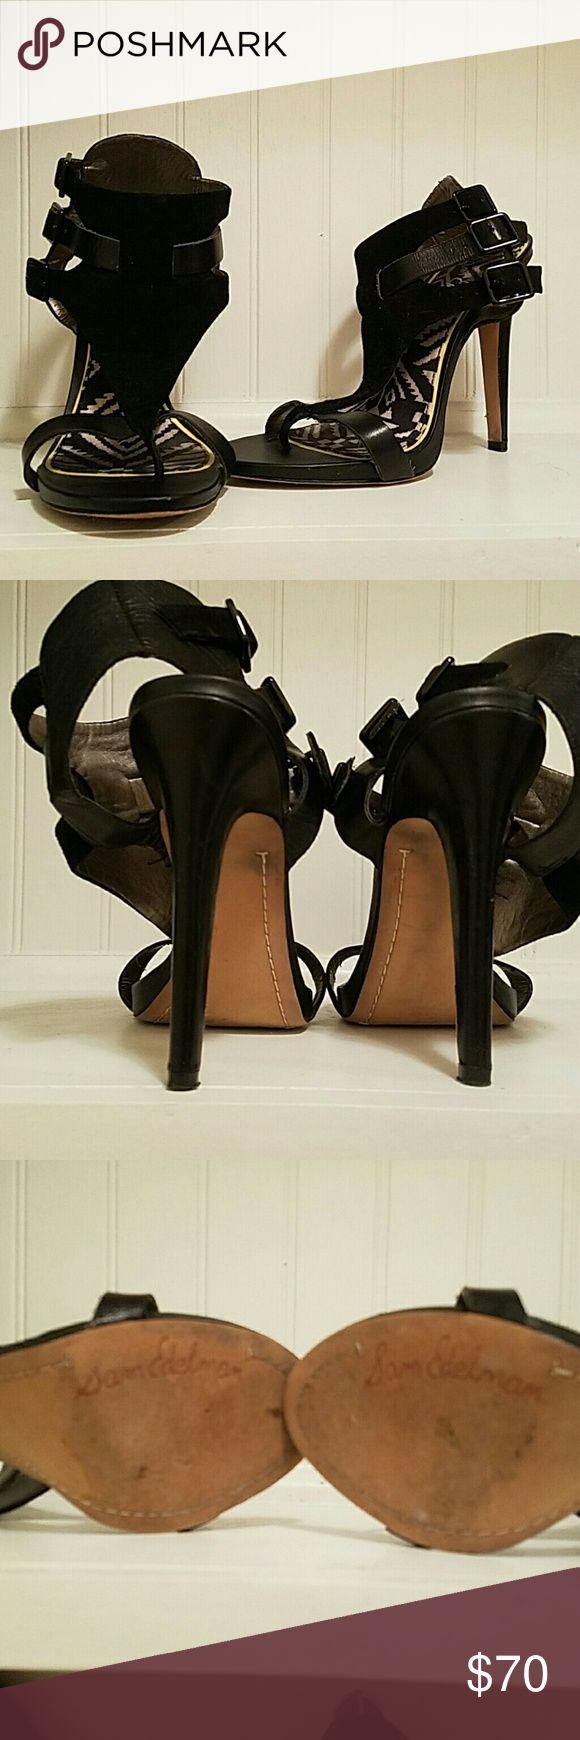 Sam Edelman heels Genuine leather  & suede  3-strap side closure. Worn only a couple  times.  Excellent  condition, sexy  shoe! Sam Edelman Shoes Heels